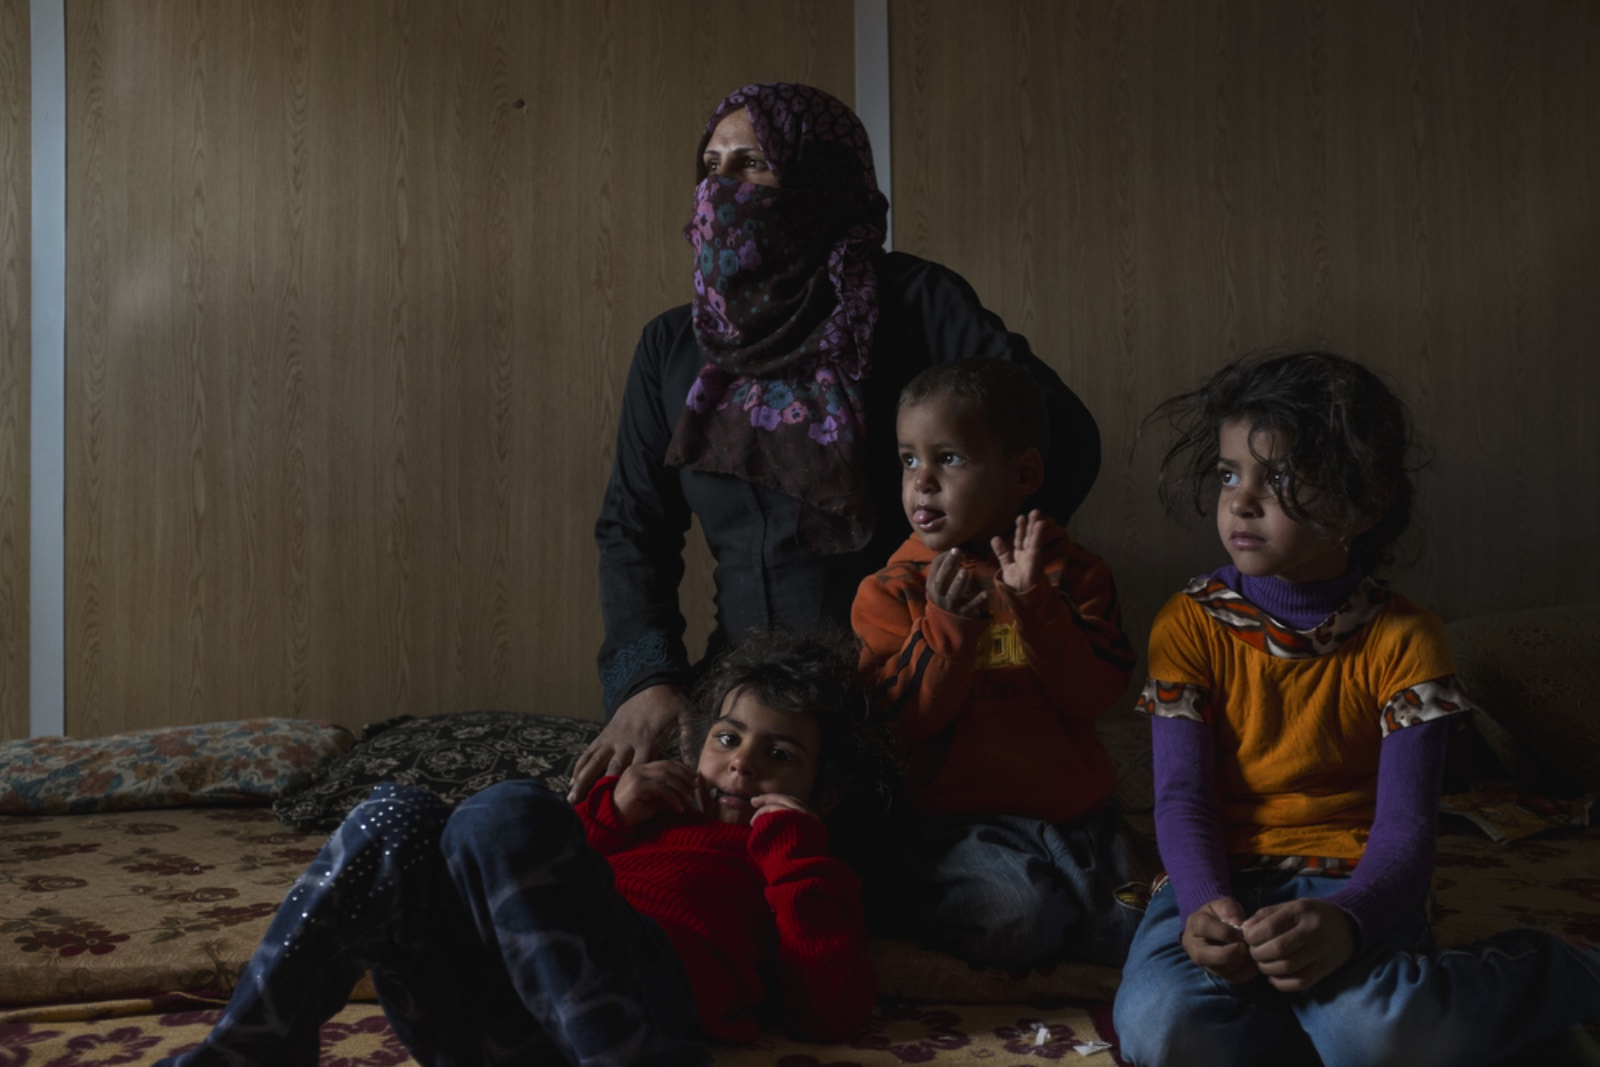 Ammeh Salah (center left), 29, from Damascus, sits with her children Jhazel (right), 6, Mohamed (center right), 3, and Arreeg (left), 5, in their caravan in the Zaatari refugee camp. Ammeh, a single mother, whose husband disappeared in Syria, supports her five children alone. The family has been living in Zaatari for four years. (Christopher Lee/GroundTruth)